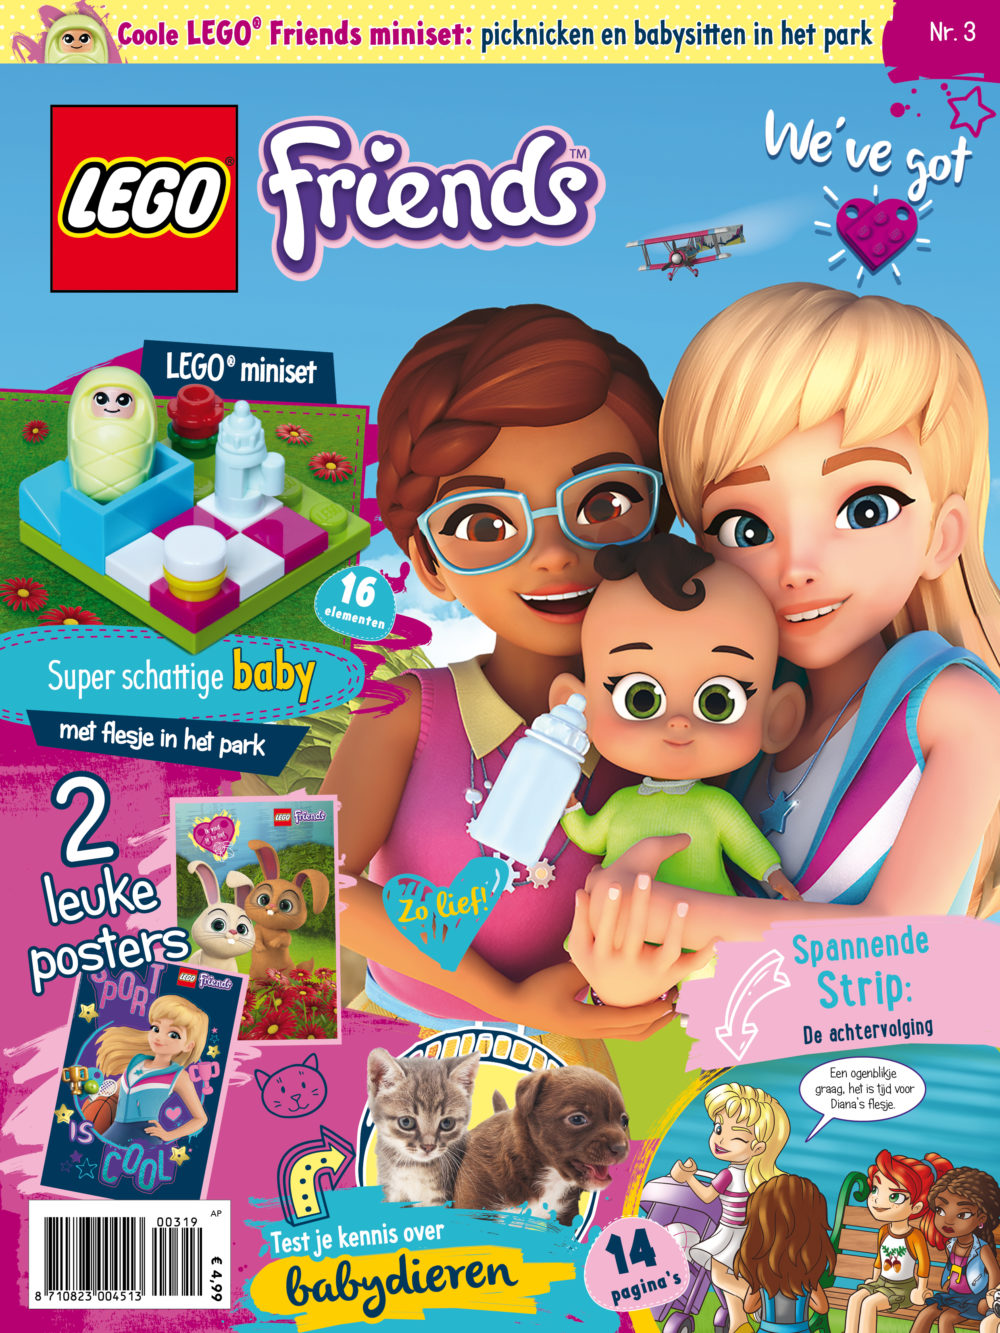 LEGO Friends magazine_03_2019